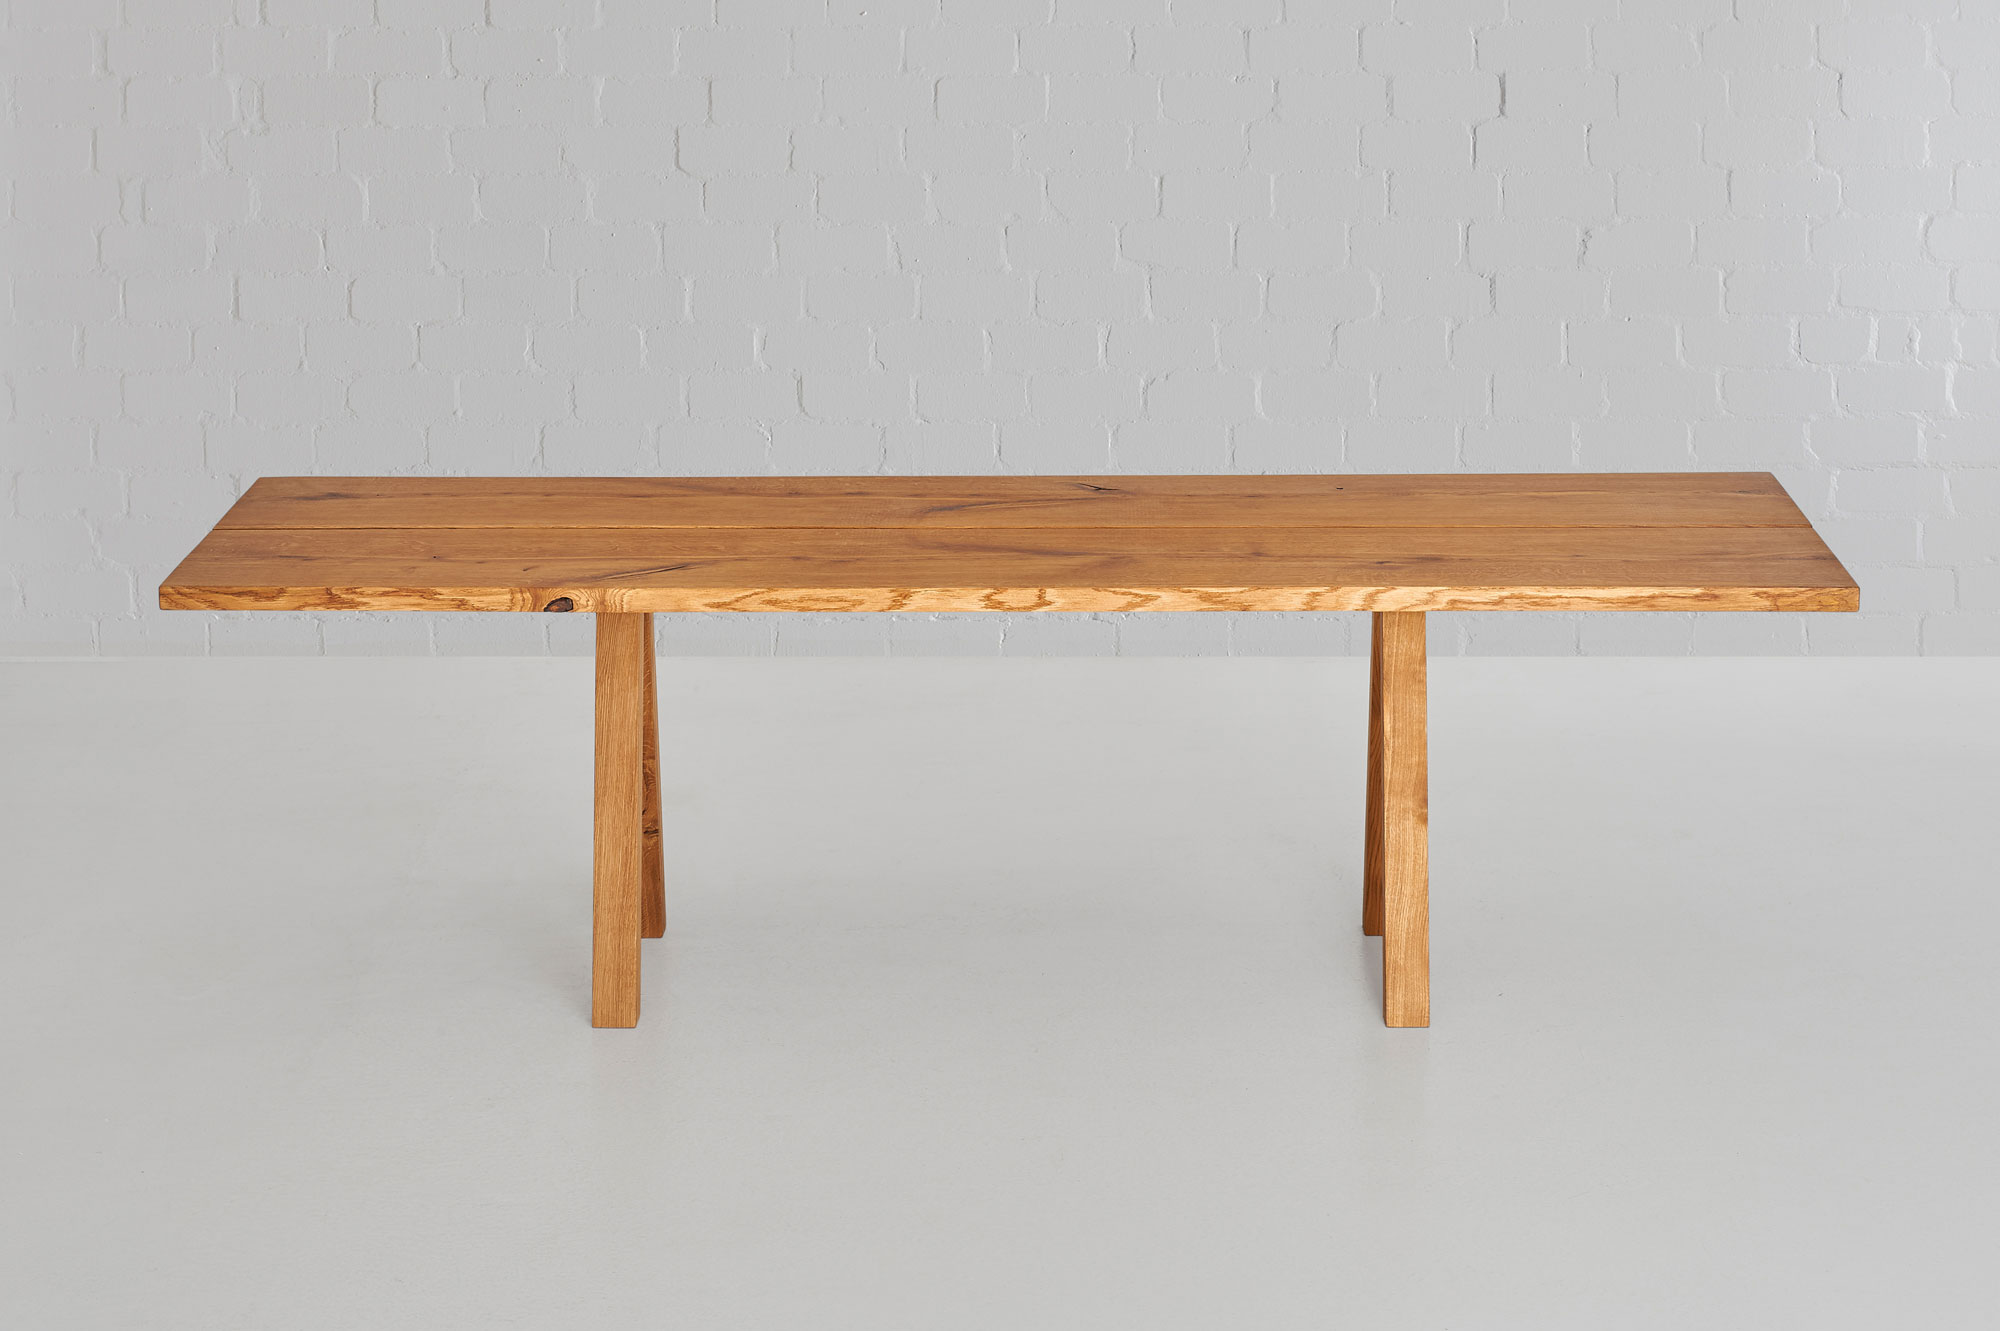 Designer Tree Trunk Table PAPILIO 0473 custom made in solid wood by vitamin design